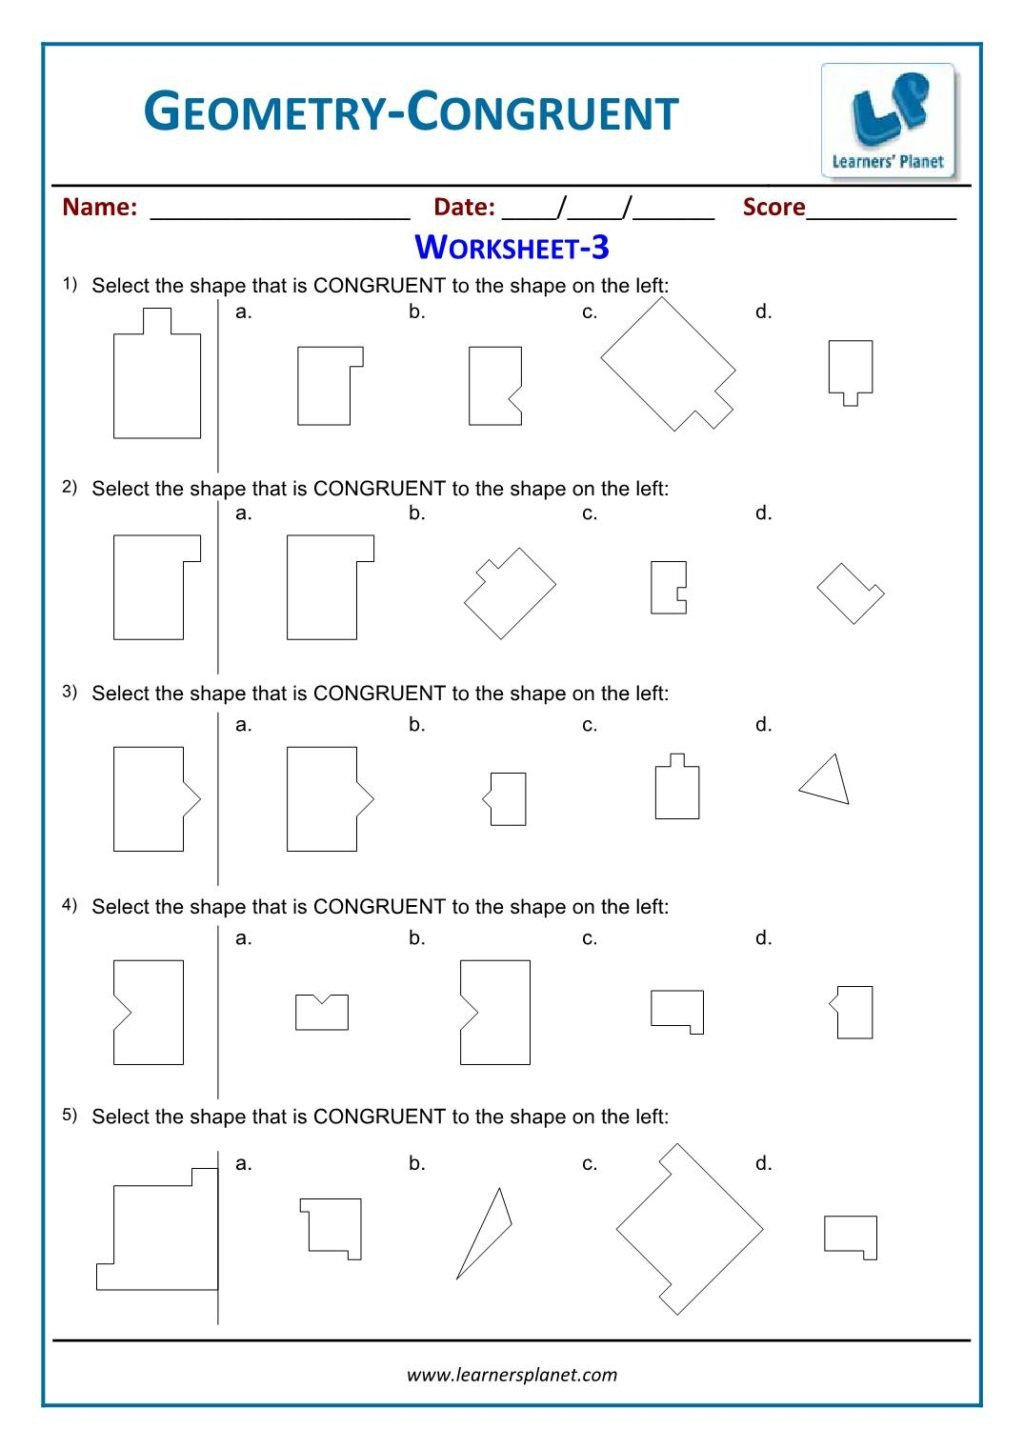 transformation geometry worksheets 2nd grade 6